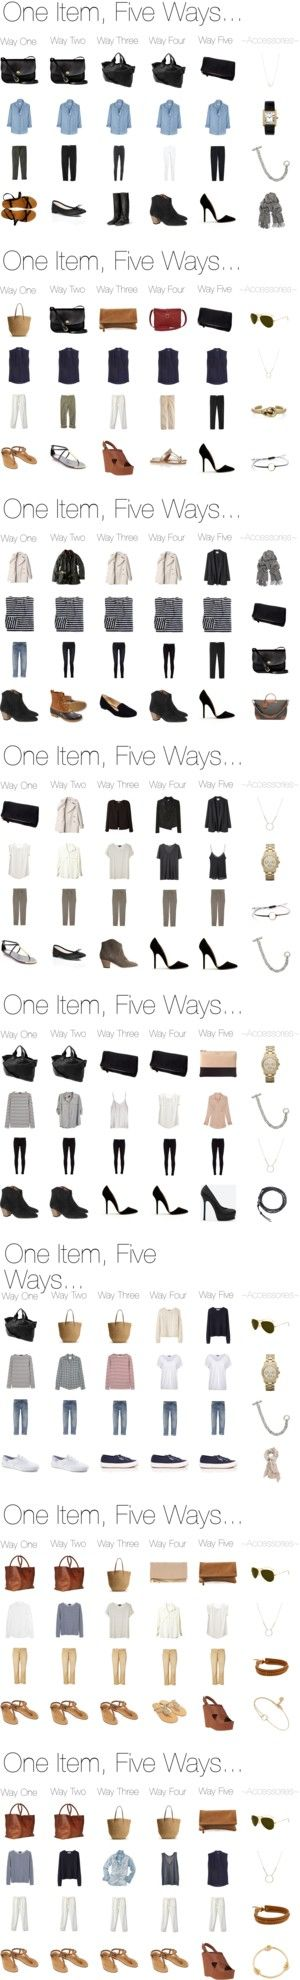 On item 5 ways